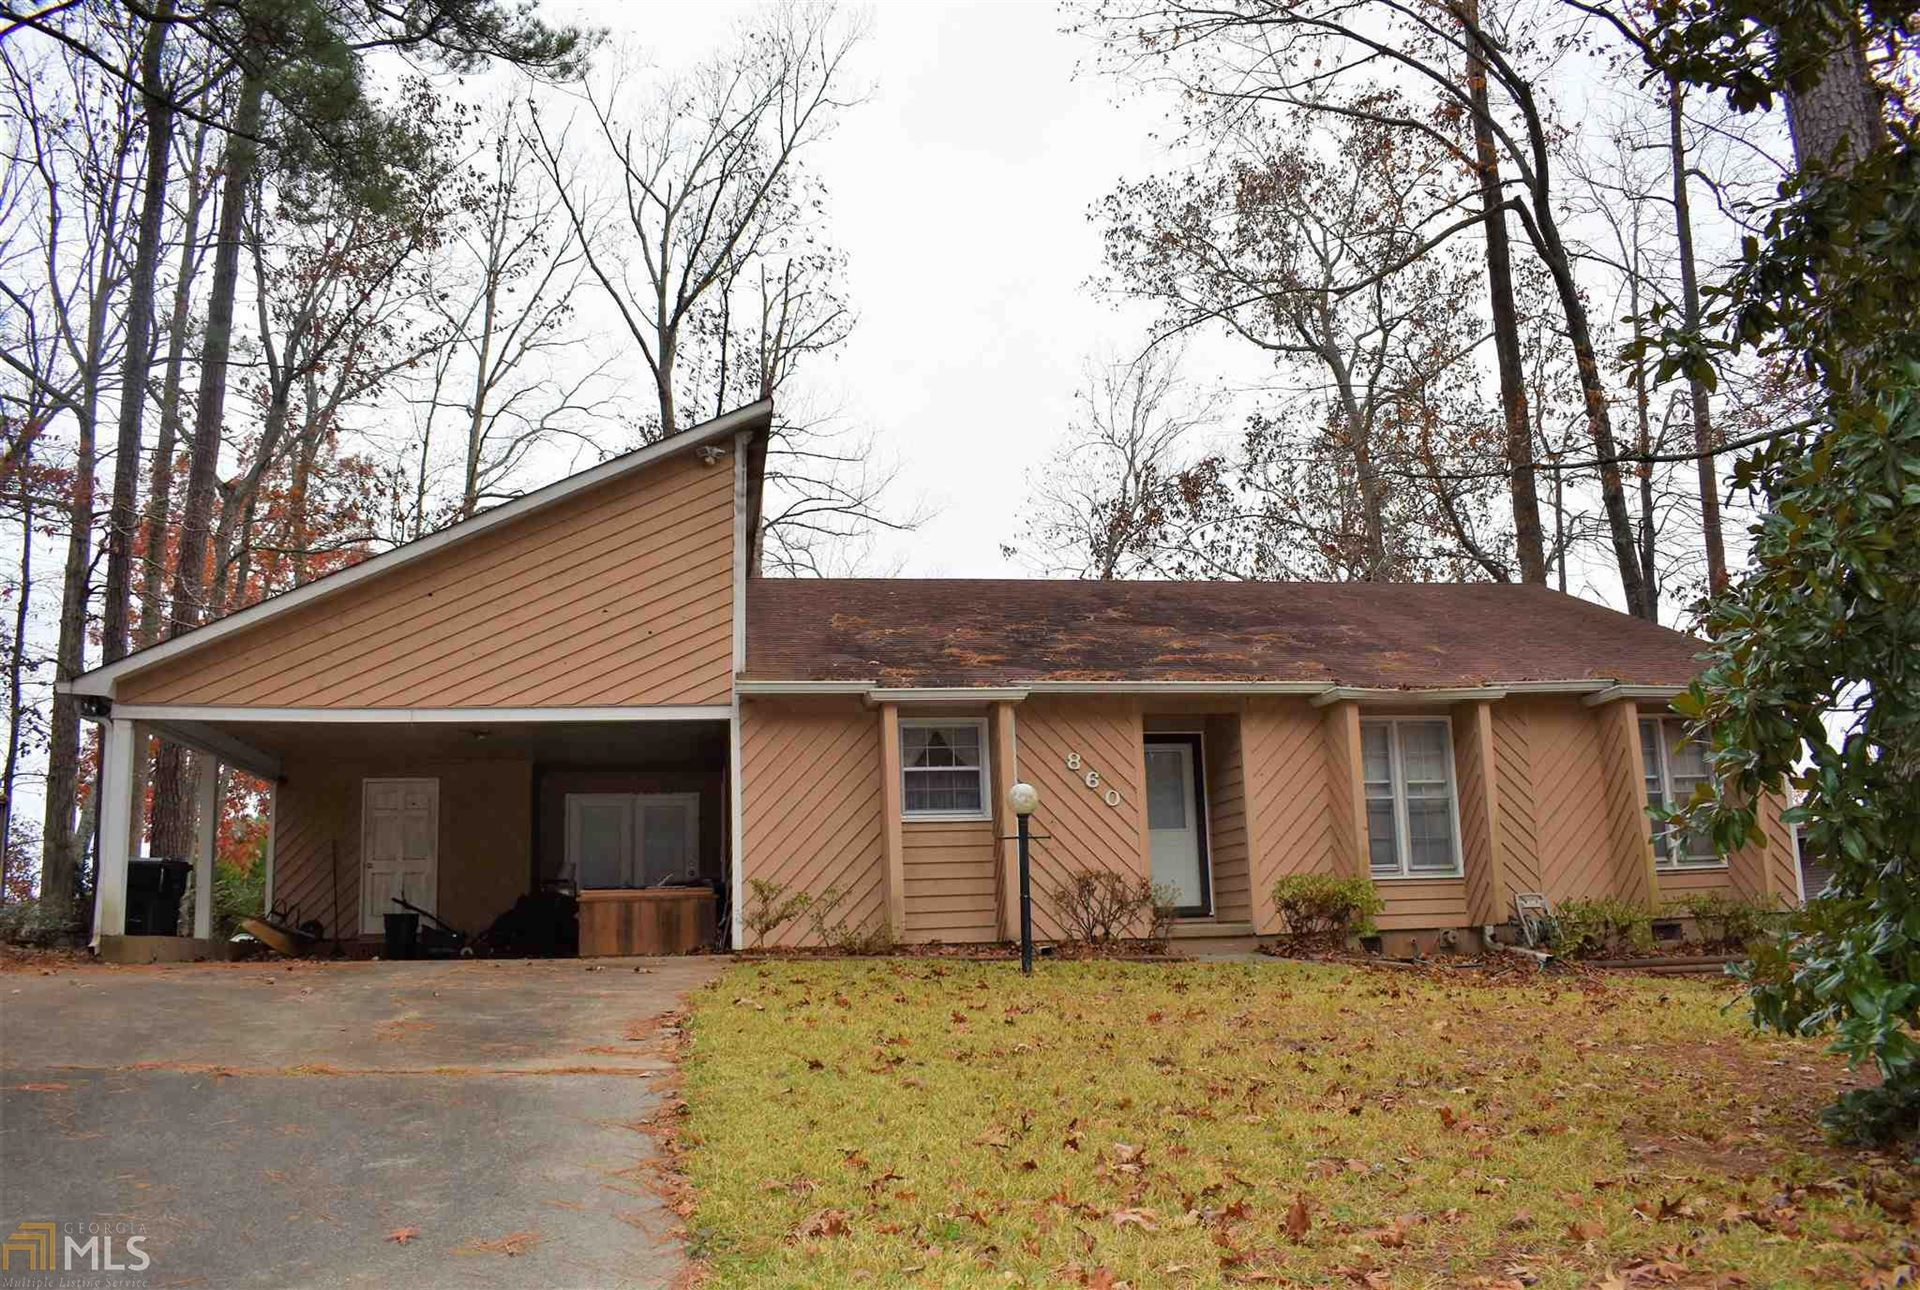 860 S Plantation Pkwy, Macon, GA 31220 - MLS#: 8902094